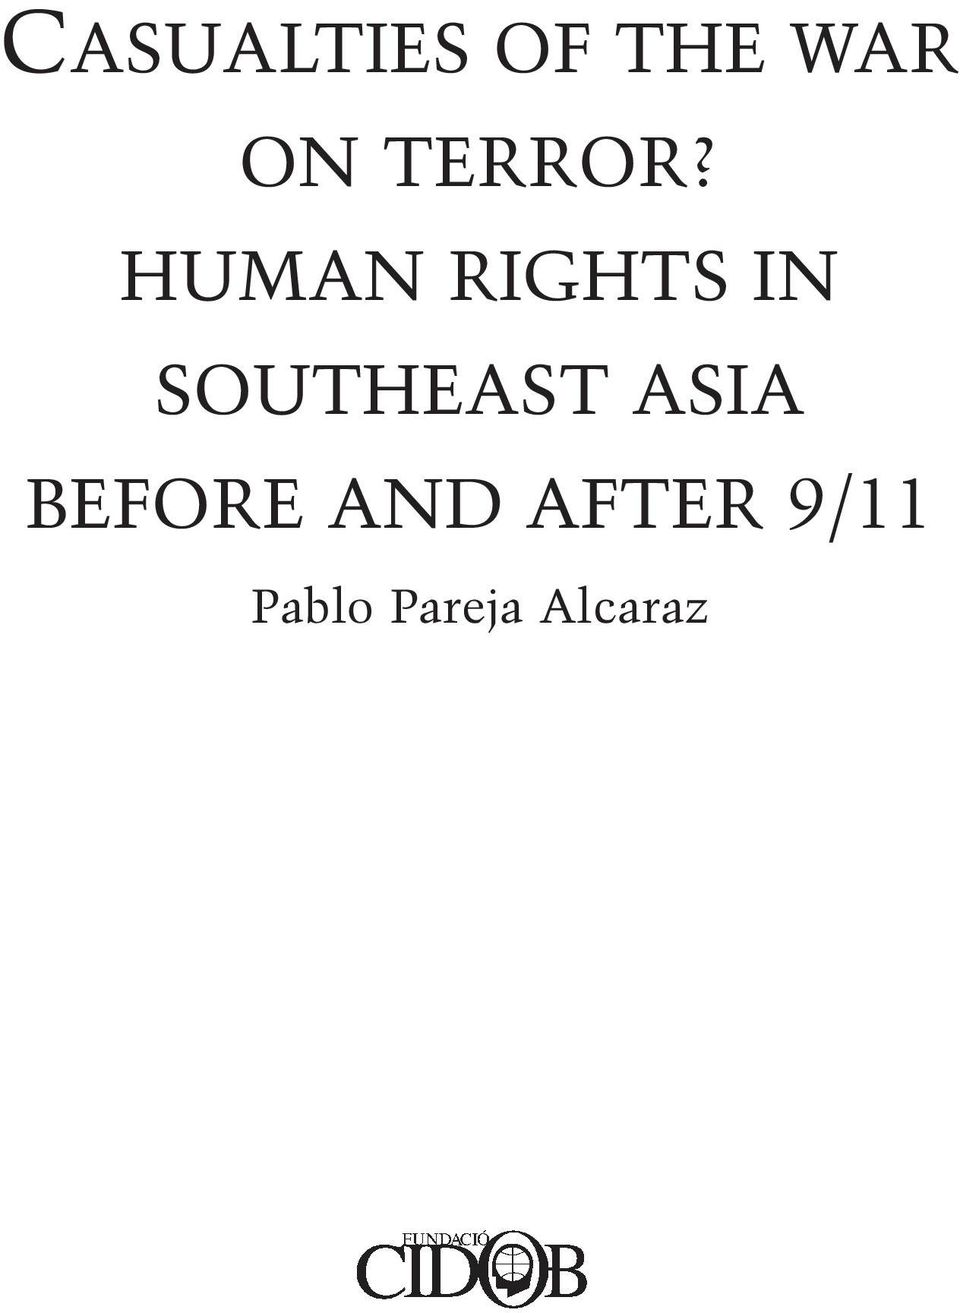 HUMAN RIGHTS IN SOUTHEAST